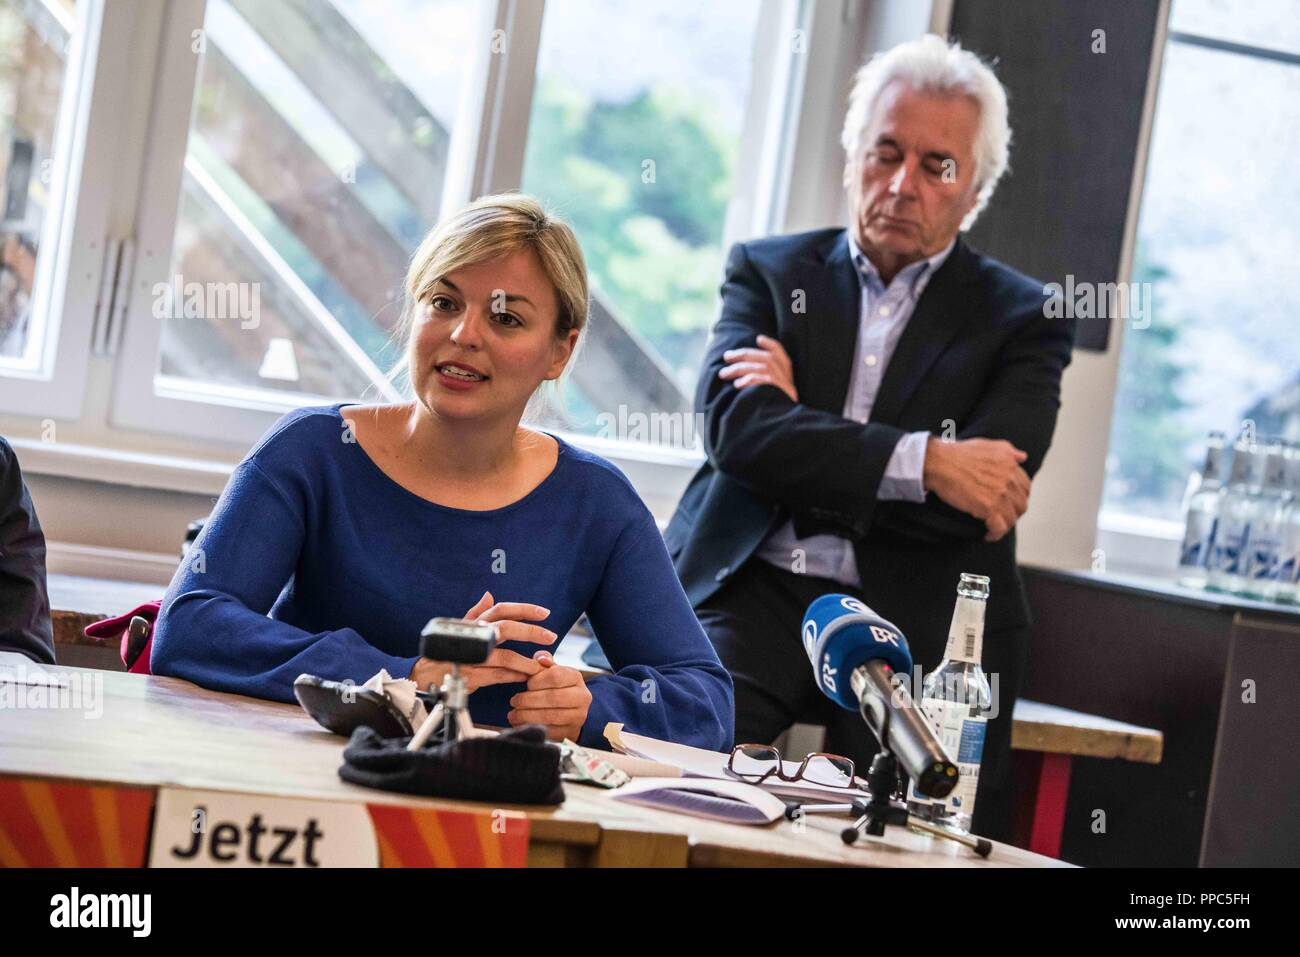 Munich, Bavaria, Germany. 25th Sep, 2018. KATHARINA SCHULZE of the Green Party with HARTMUT WAECHTLER behind. Citing the increasing politics of fear and attacks on civil and human rights, some 55 civil groups, organizations, and political parties have organized a follow up to the successful Munich NoPAG demonstration against the PAG Police Assignment Laws. The groups state that the increasingly exclusionary and populistic politics of the CSU and the AfD, along with the Polizeiaufgabengesetze (PAG Police Assignment Laws) are turning citizens into objects, which is a prerequisite for aut - Stock Image